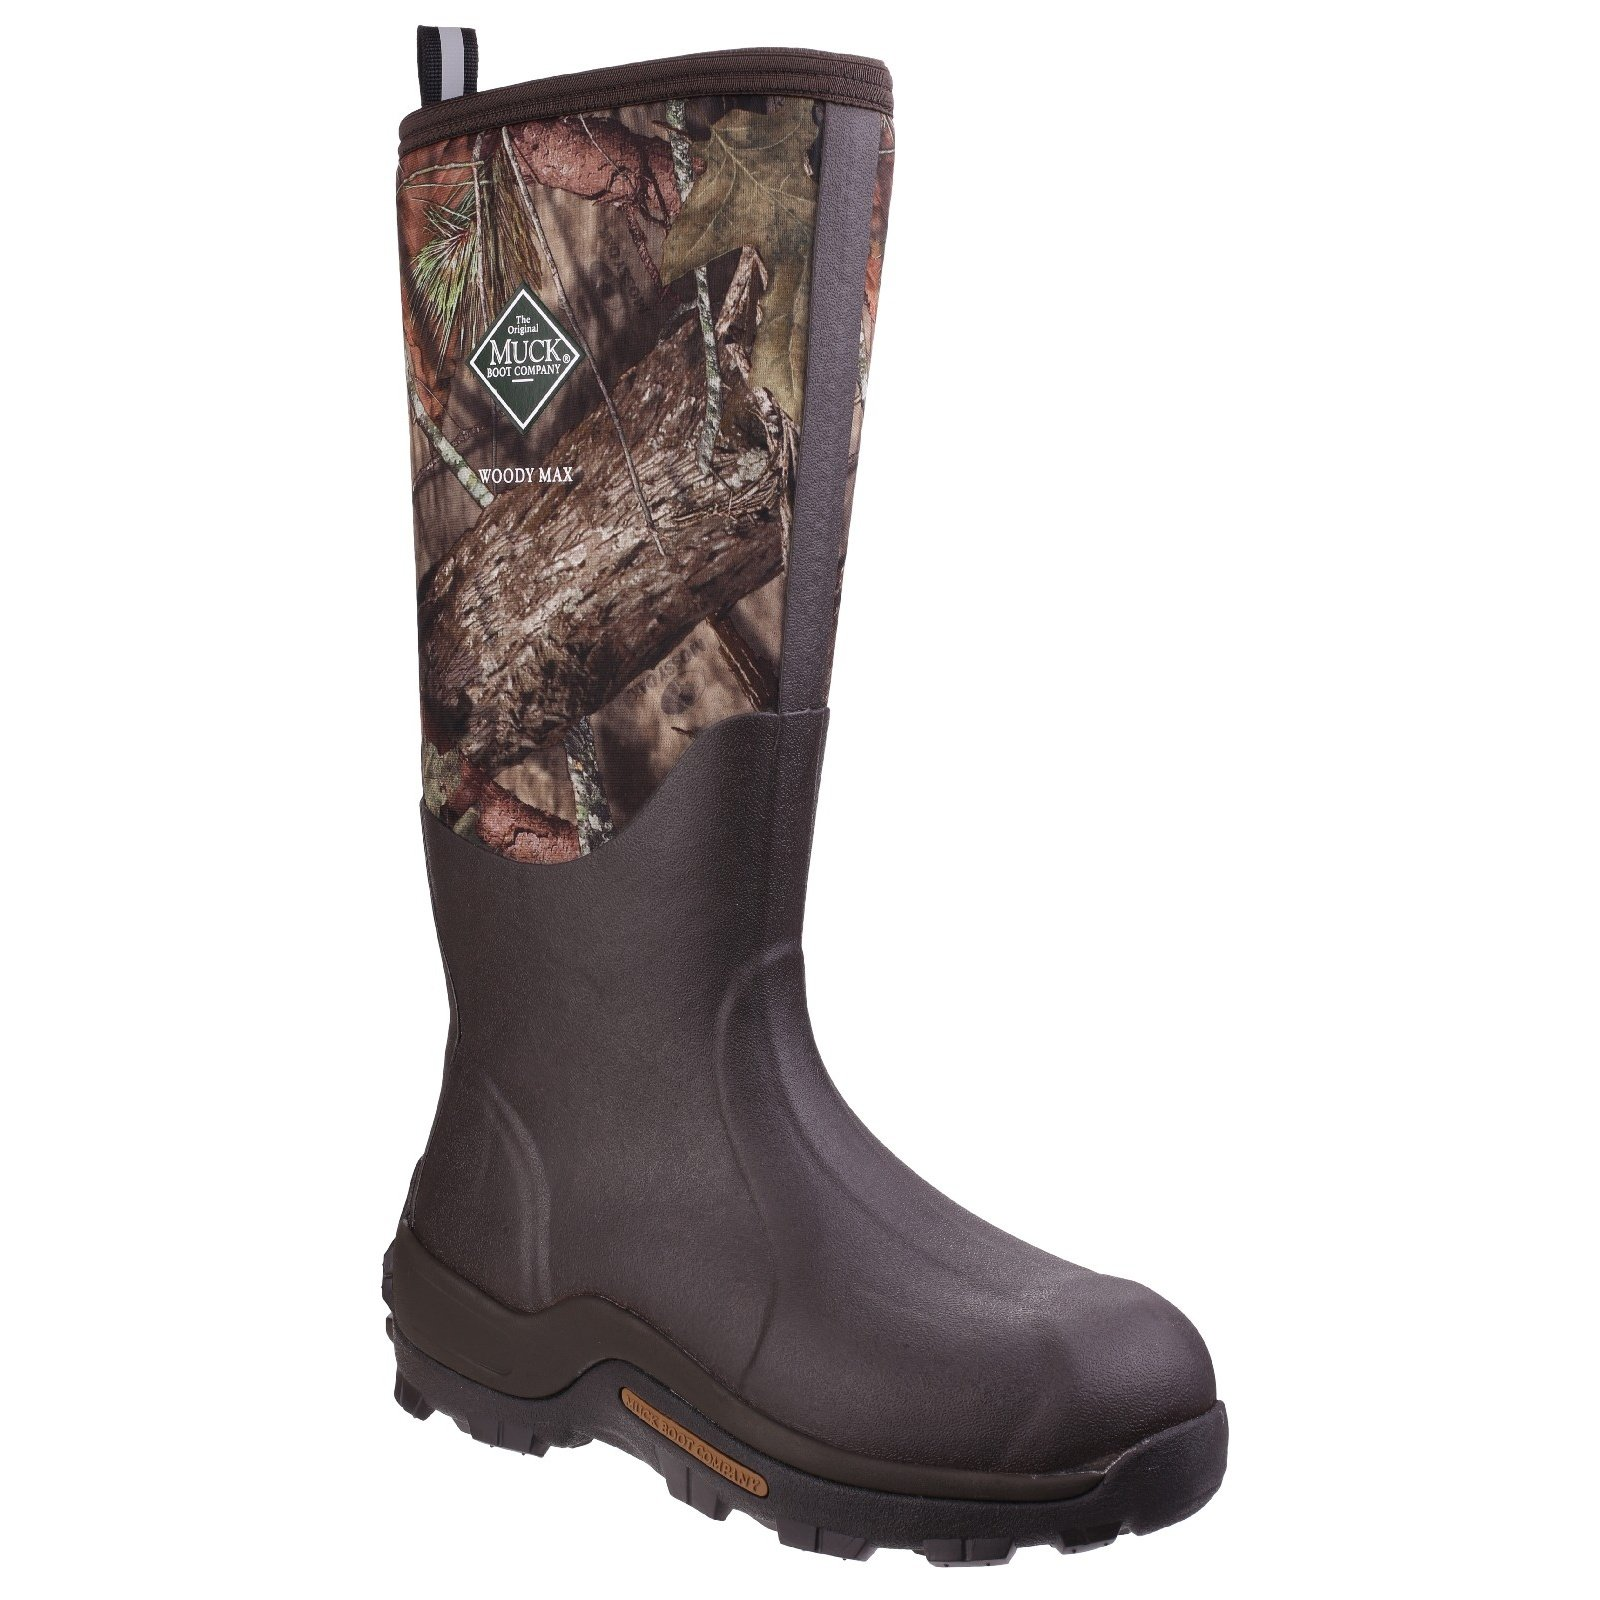 Muck Boot Unisex Woody Max Cold-Conditions Hunting Boot (10 M US / 11 W US) (Mossy Oak Break-up Country) by Muck Boot